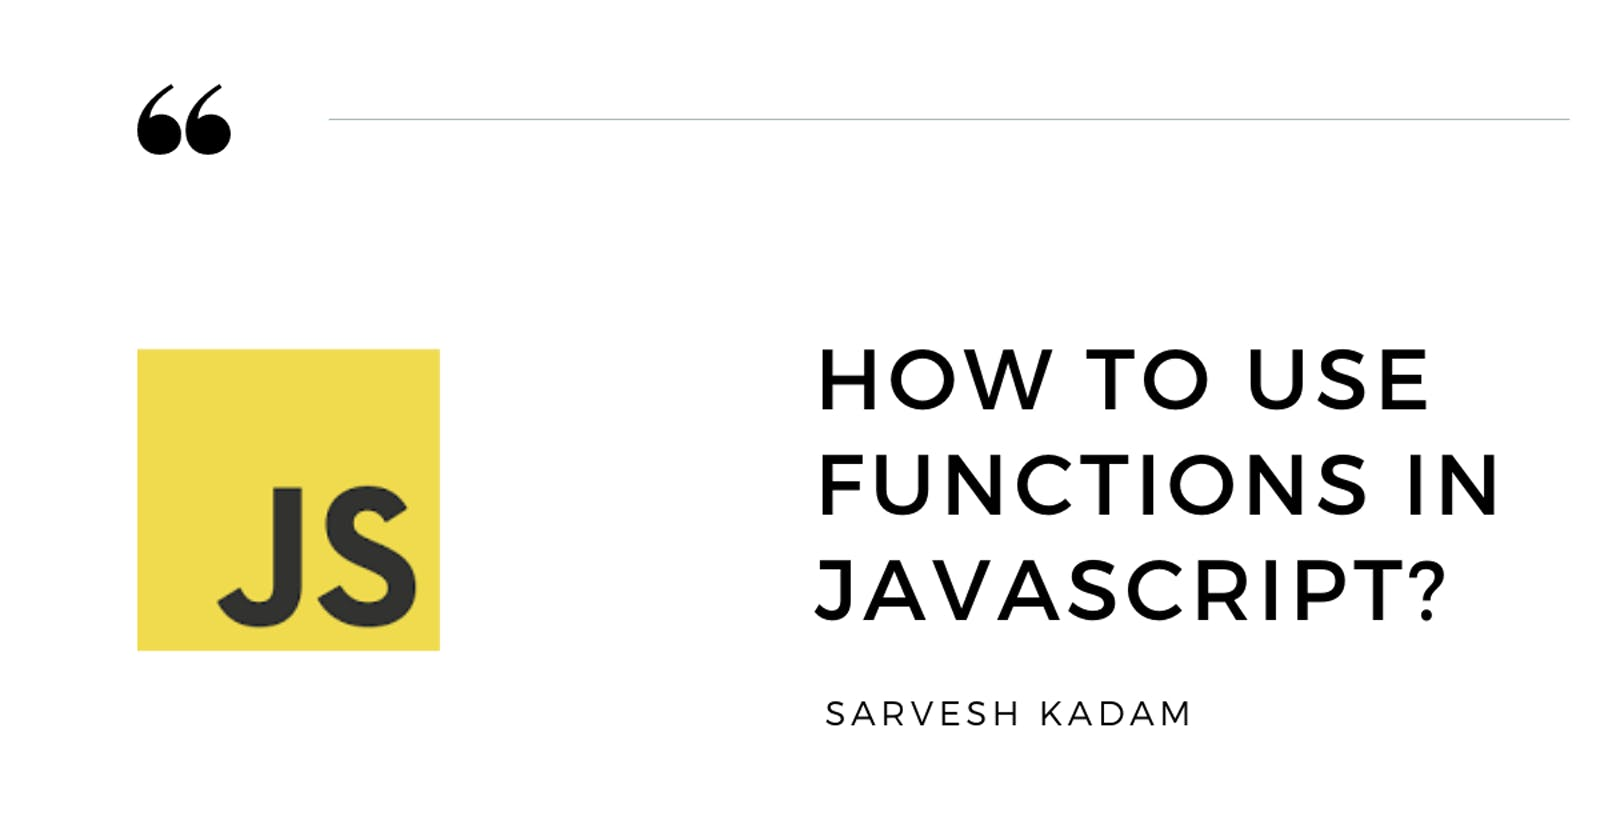 How to use Functions in JavaScript?